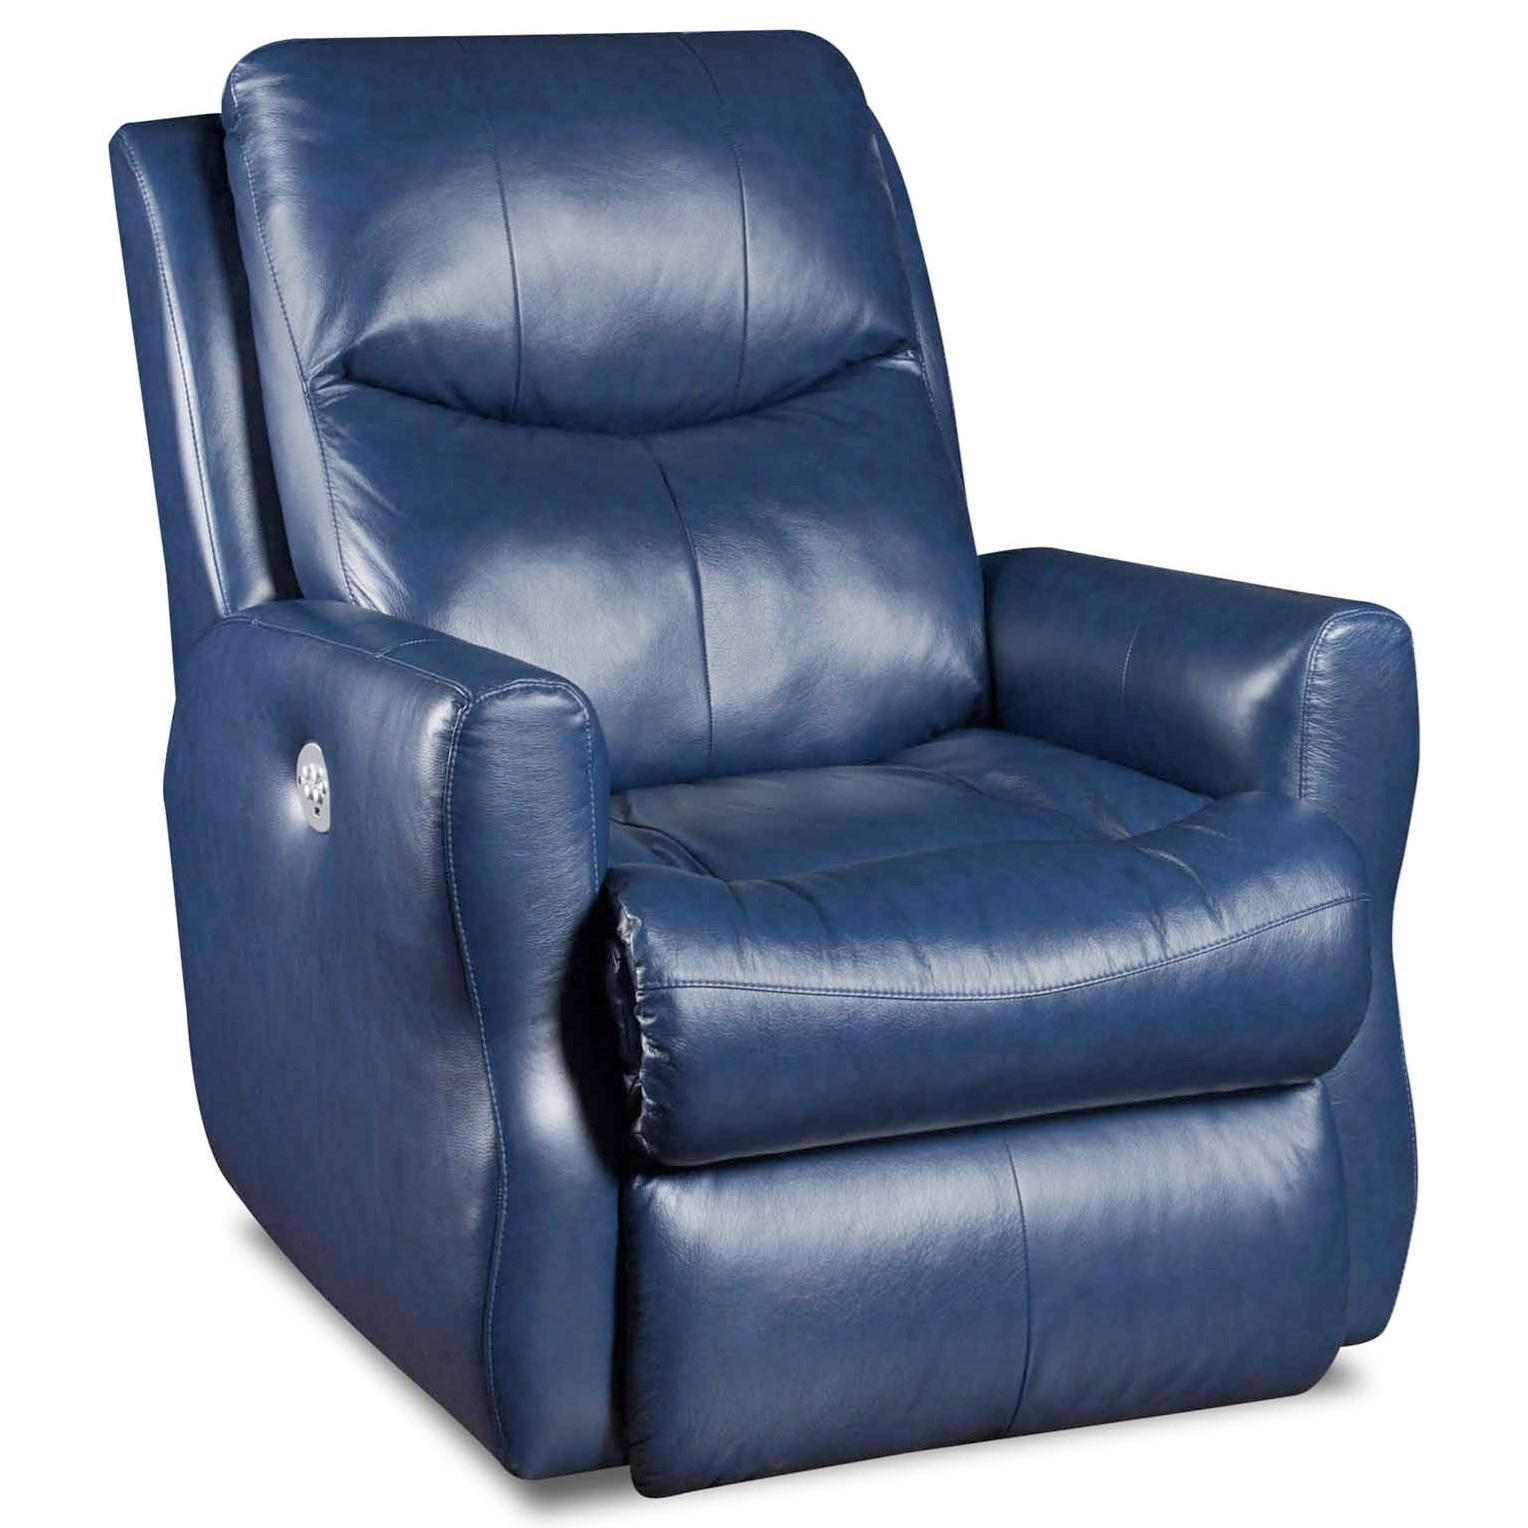 Southern Motion ReclinersFame Power Headrest Wall Hugger Recliner